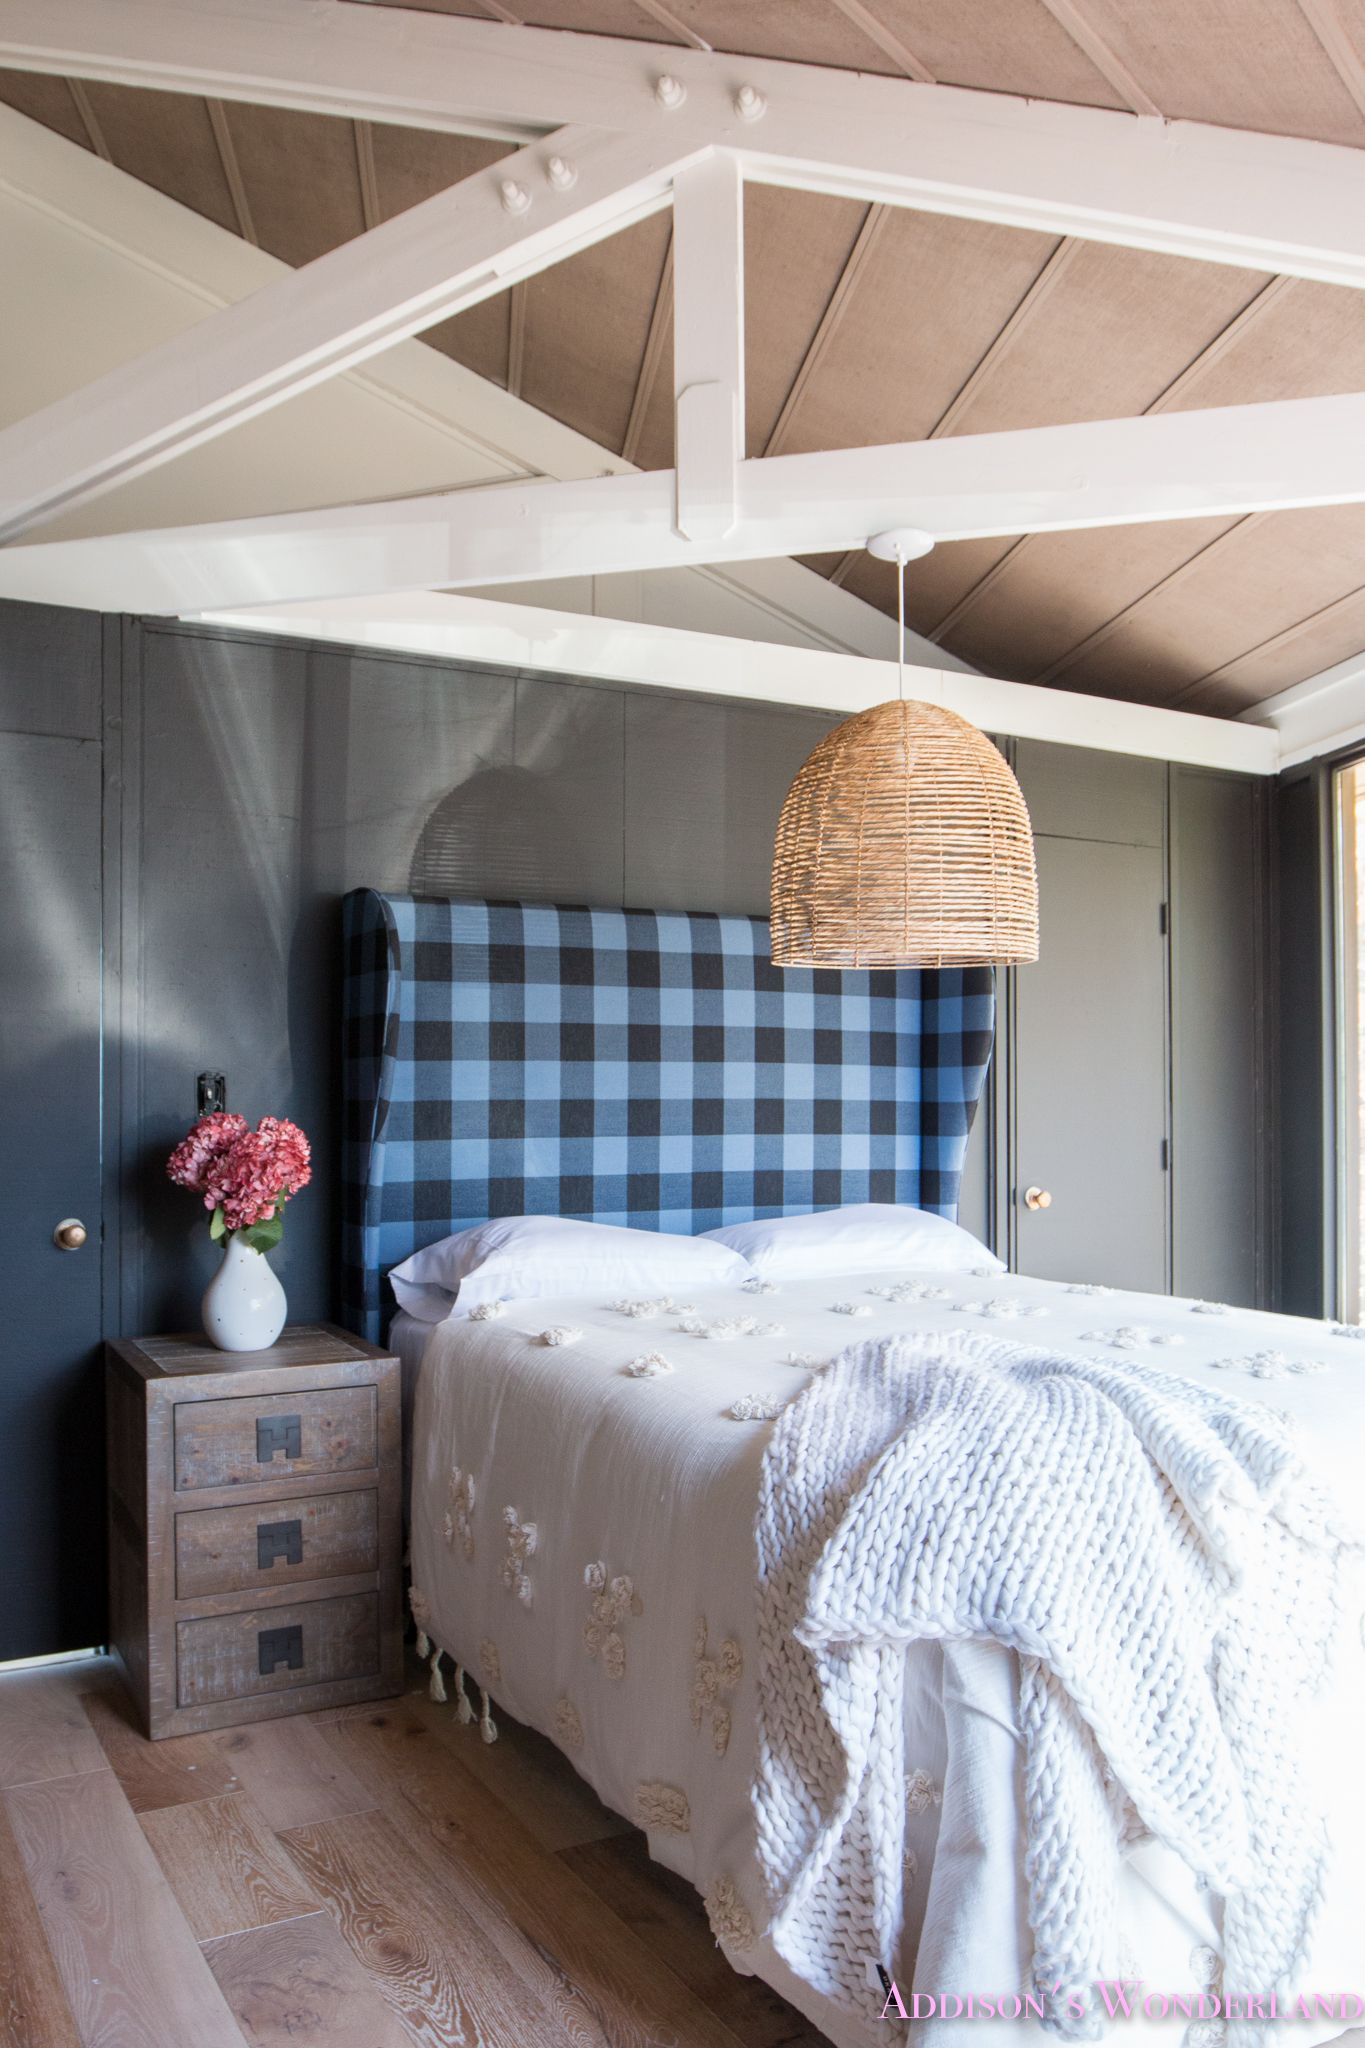 Our Treehouse Master Bedroom Paint Makeover with Ace